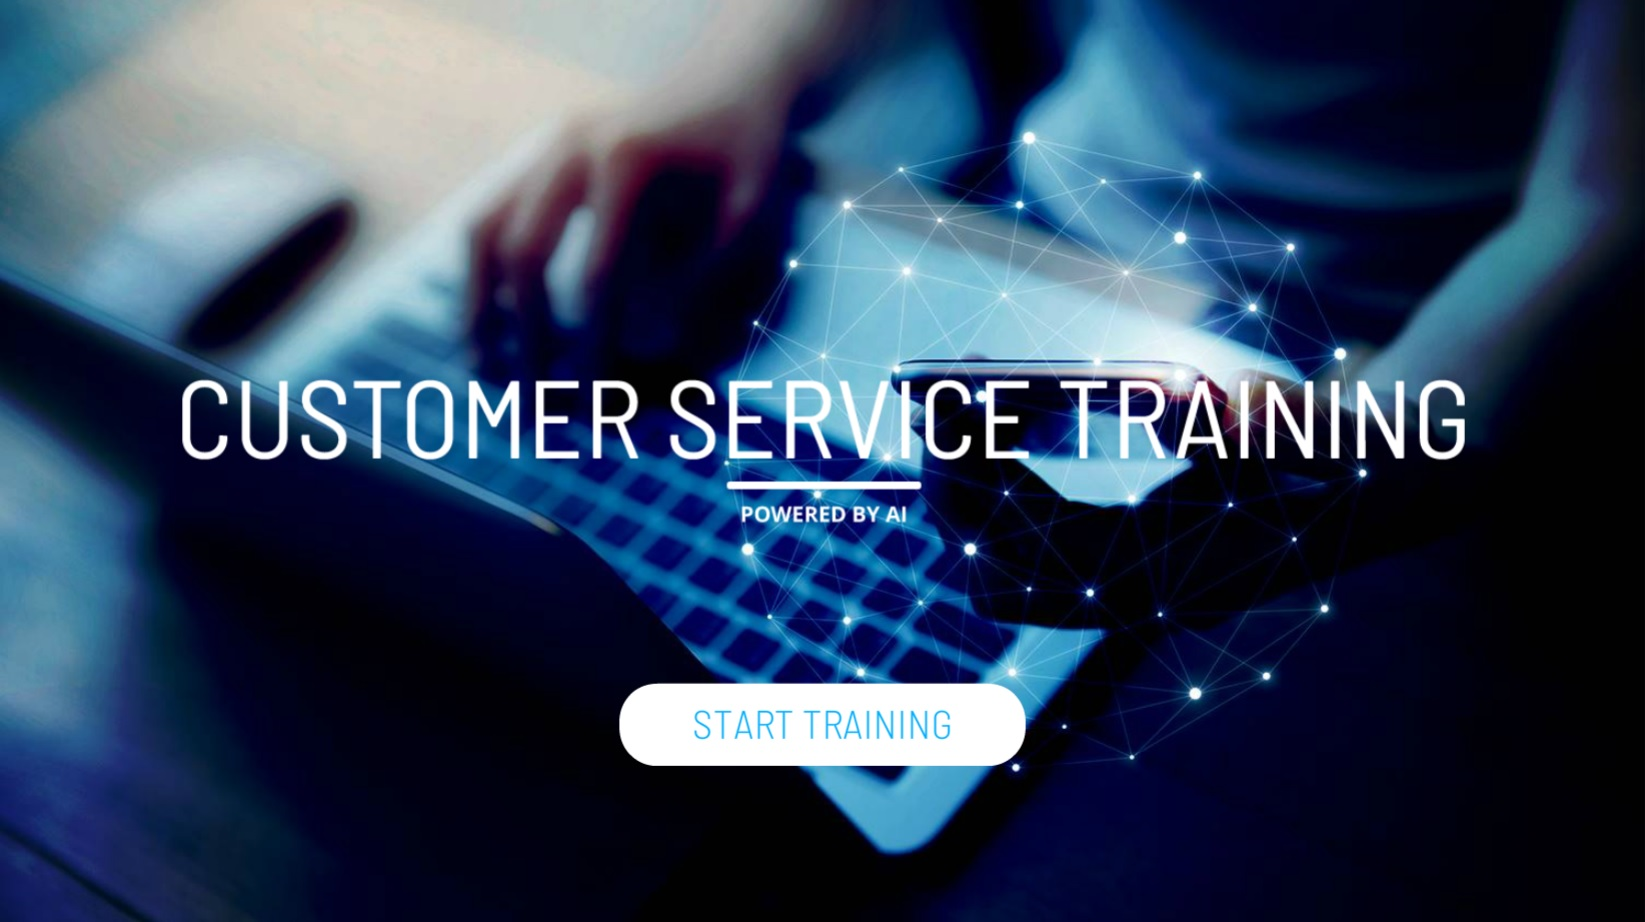 Customer Service eLearning Powered by Artificial Intelligence